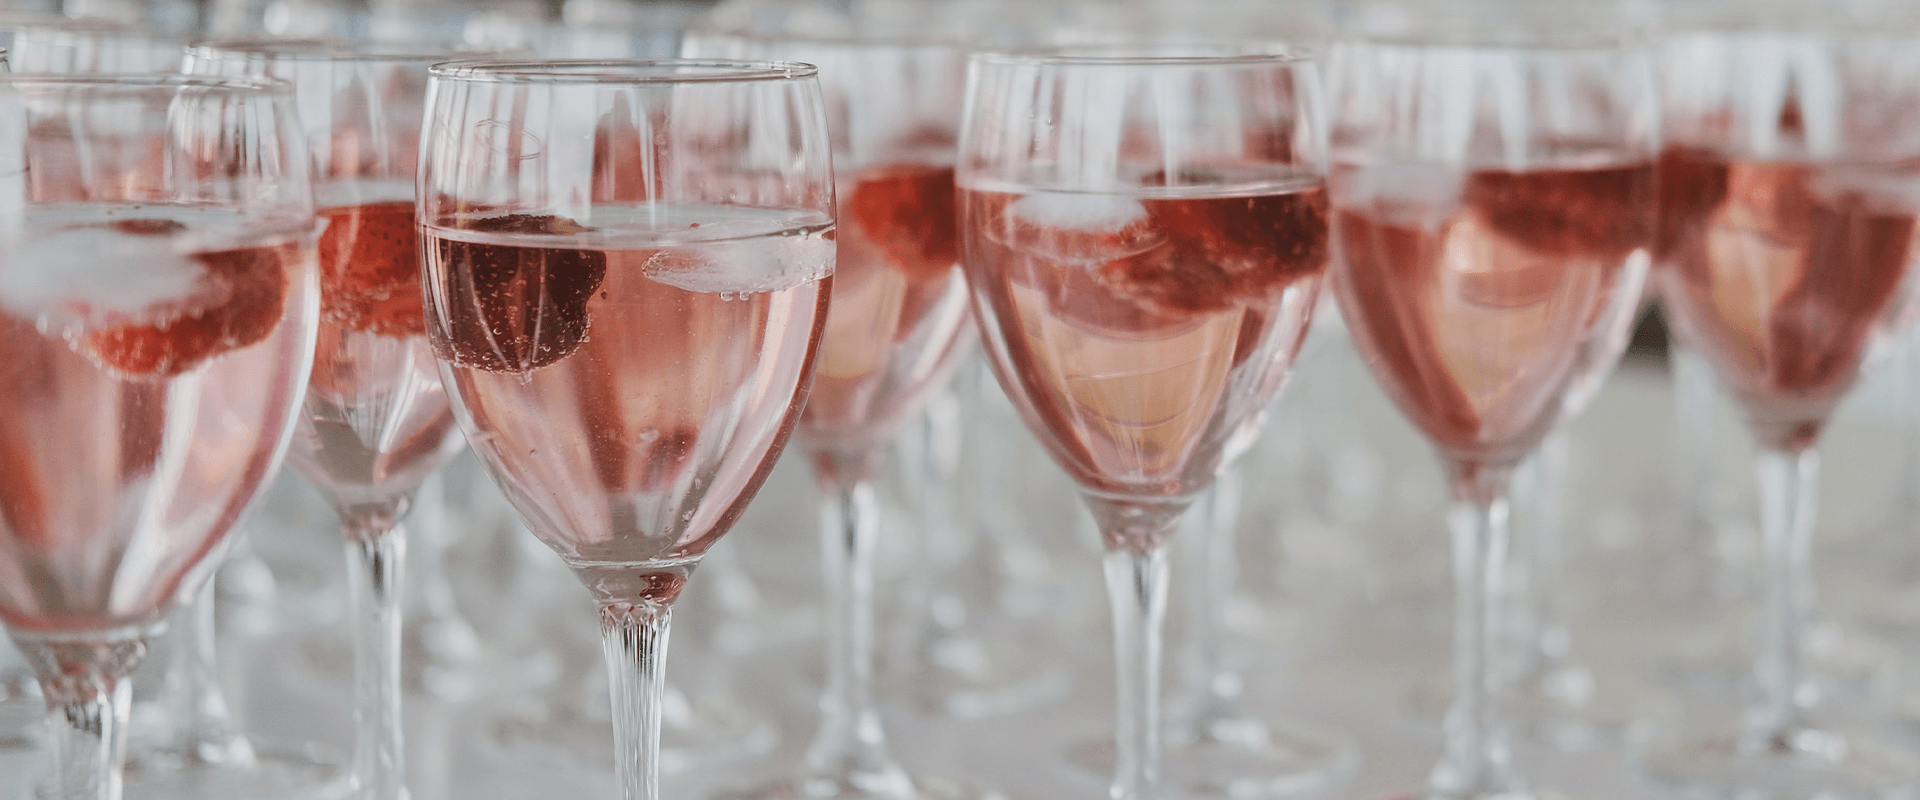 5 reasons why Rosé is the perfect wine to enjoy year round